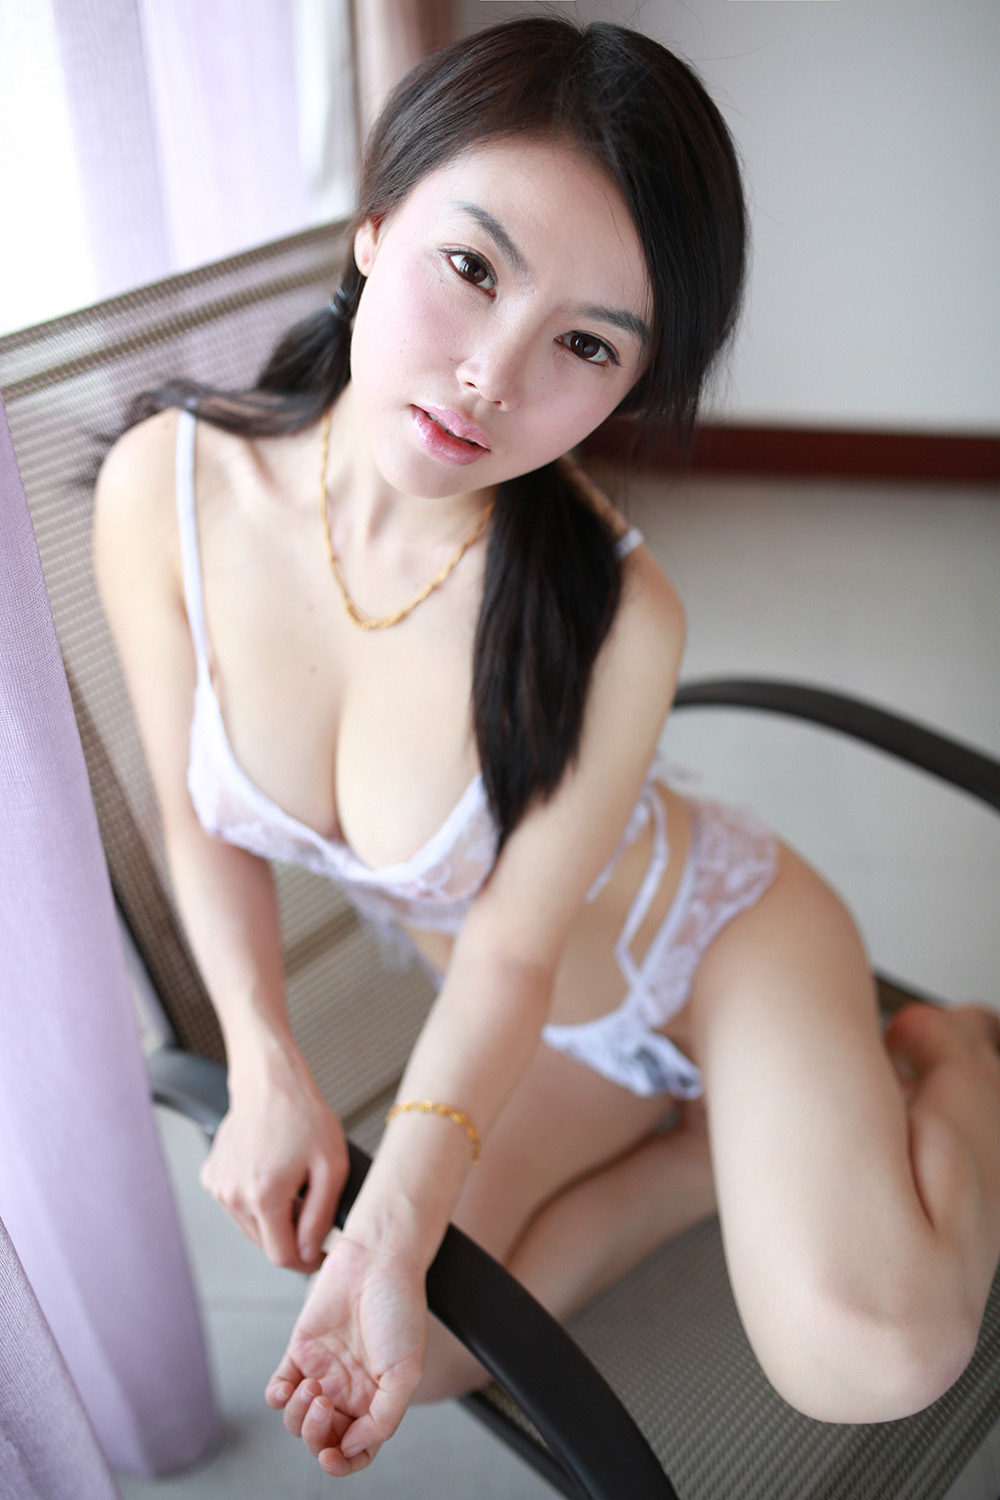 660A1278 - MYGIRL NO.27 Photo Nude Hot